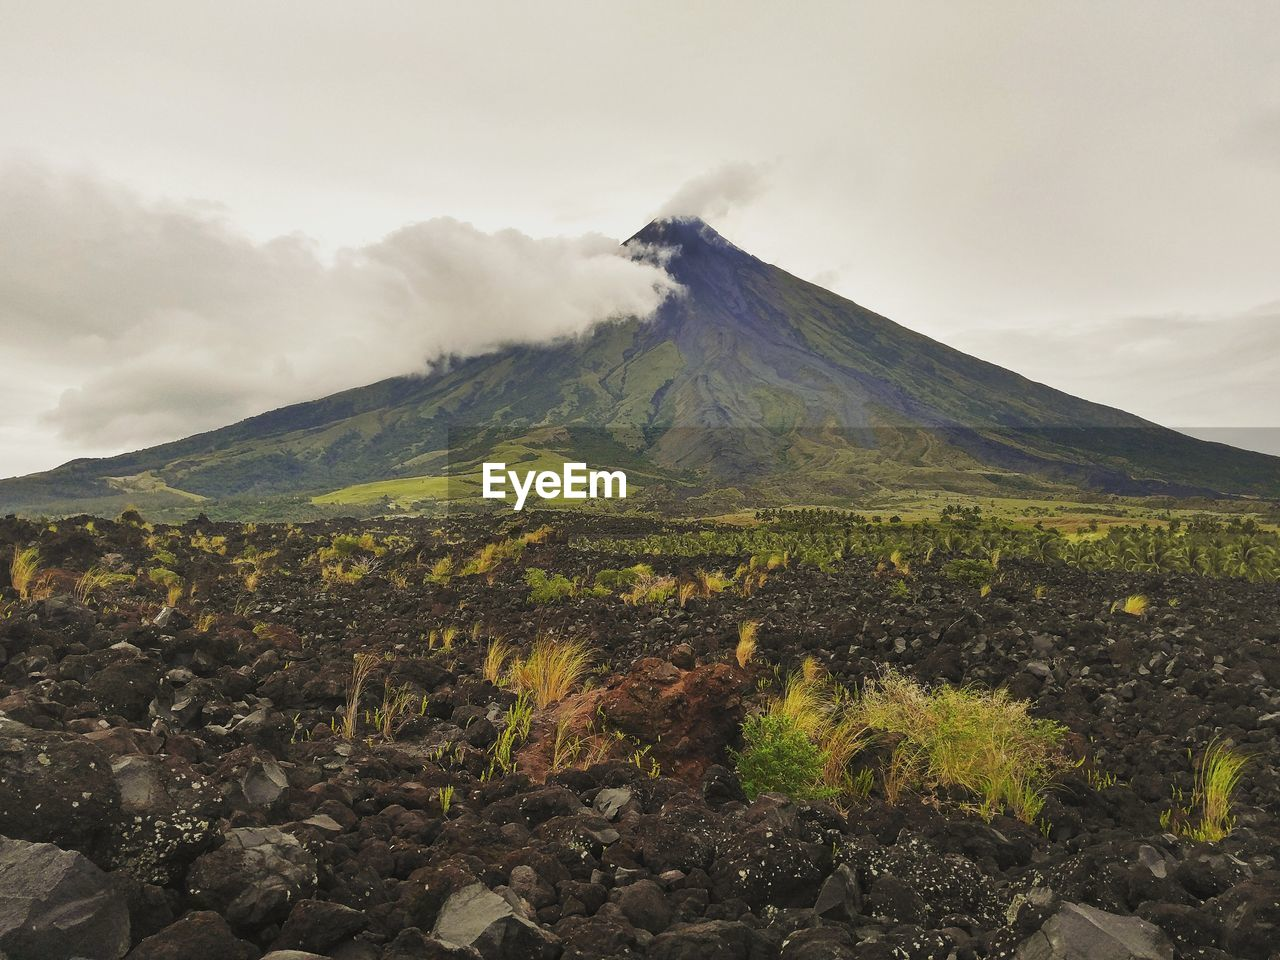 mountain, sky, beauty in nature, volcano, cloud - sky, scenics - nature, environment, landscape, tranquil scene, non-urban scene, nature, tranquility, land, volcanic landscape, no people, day, geology, idyllic, plant, physical geography, outdoors, mountain peak, volcanic crater